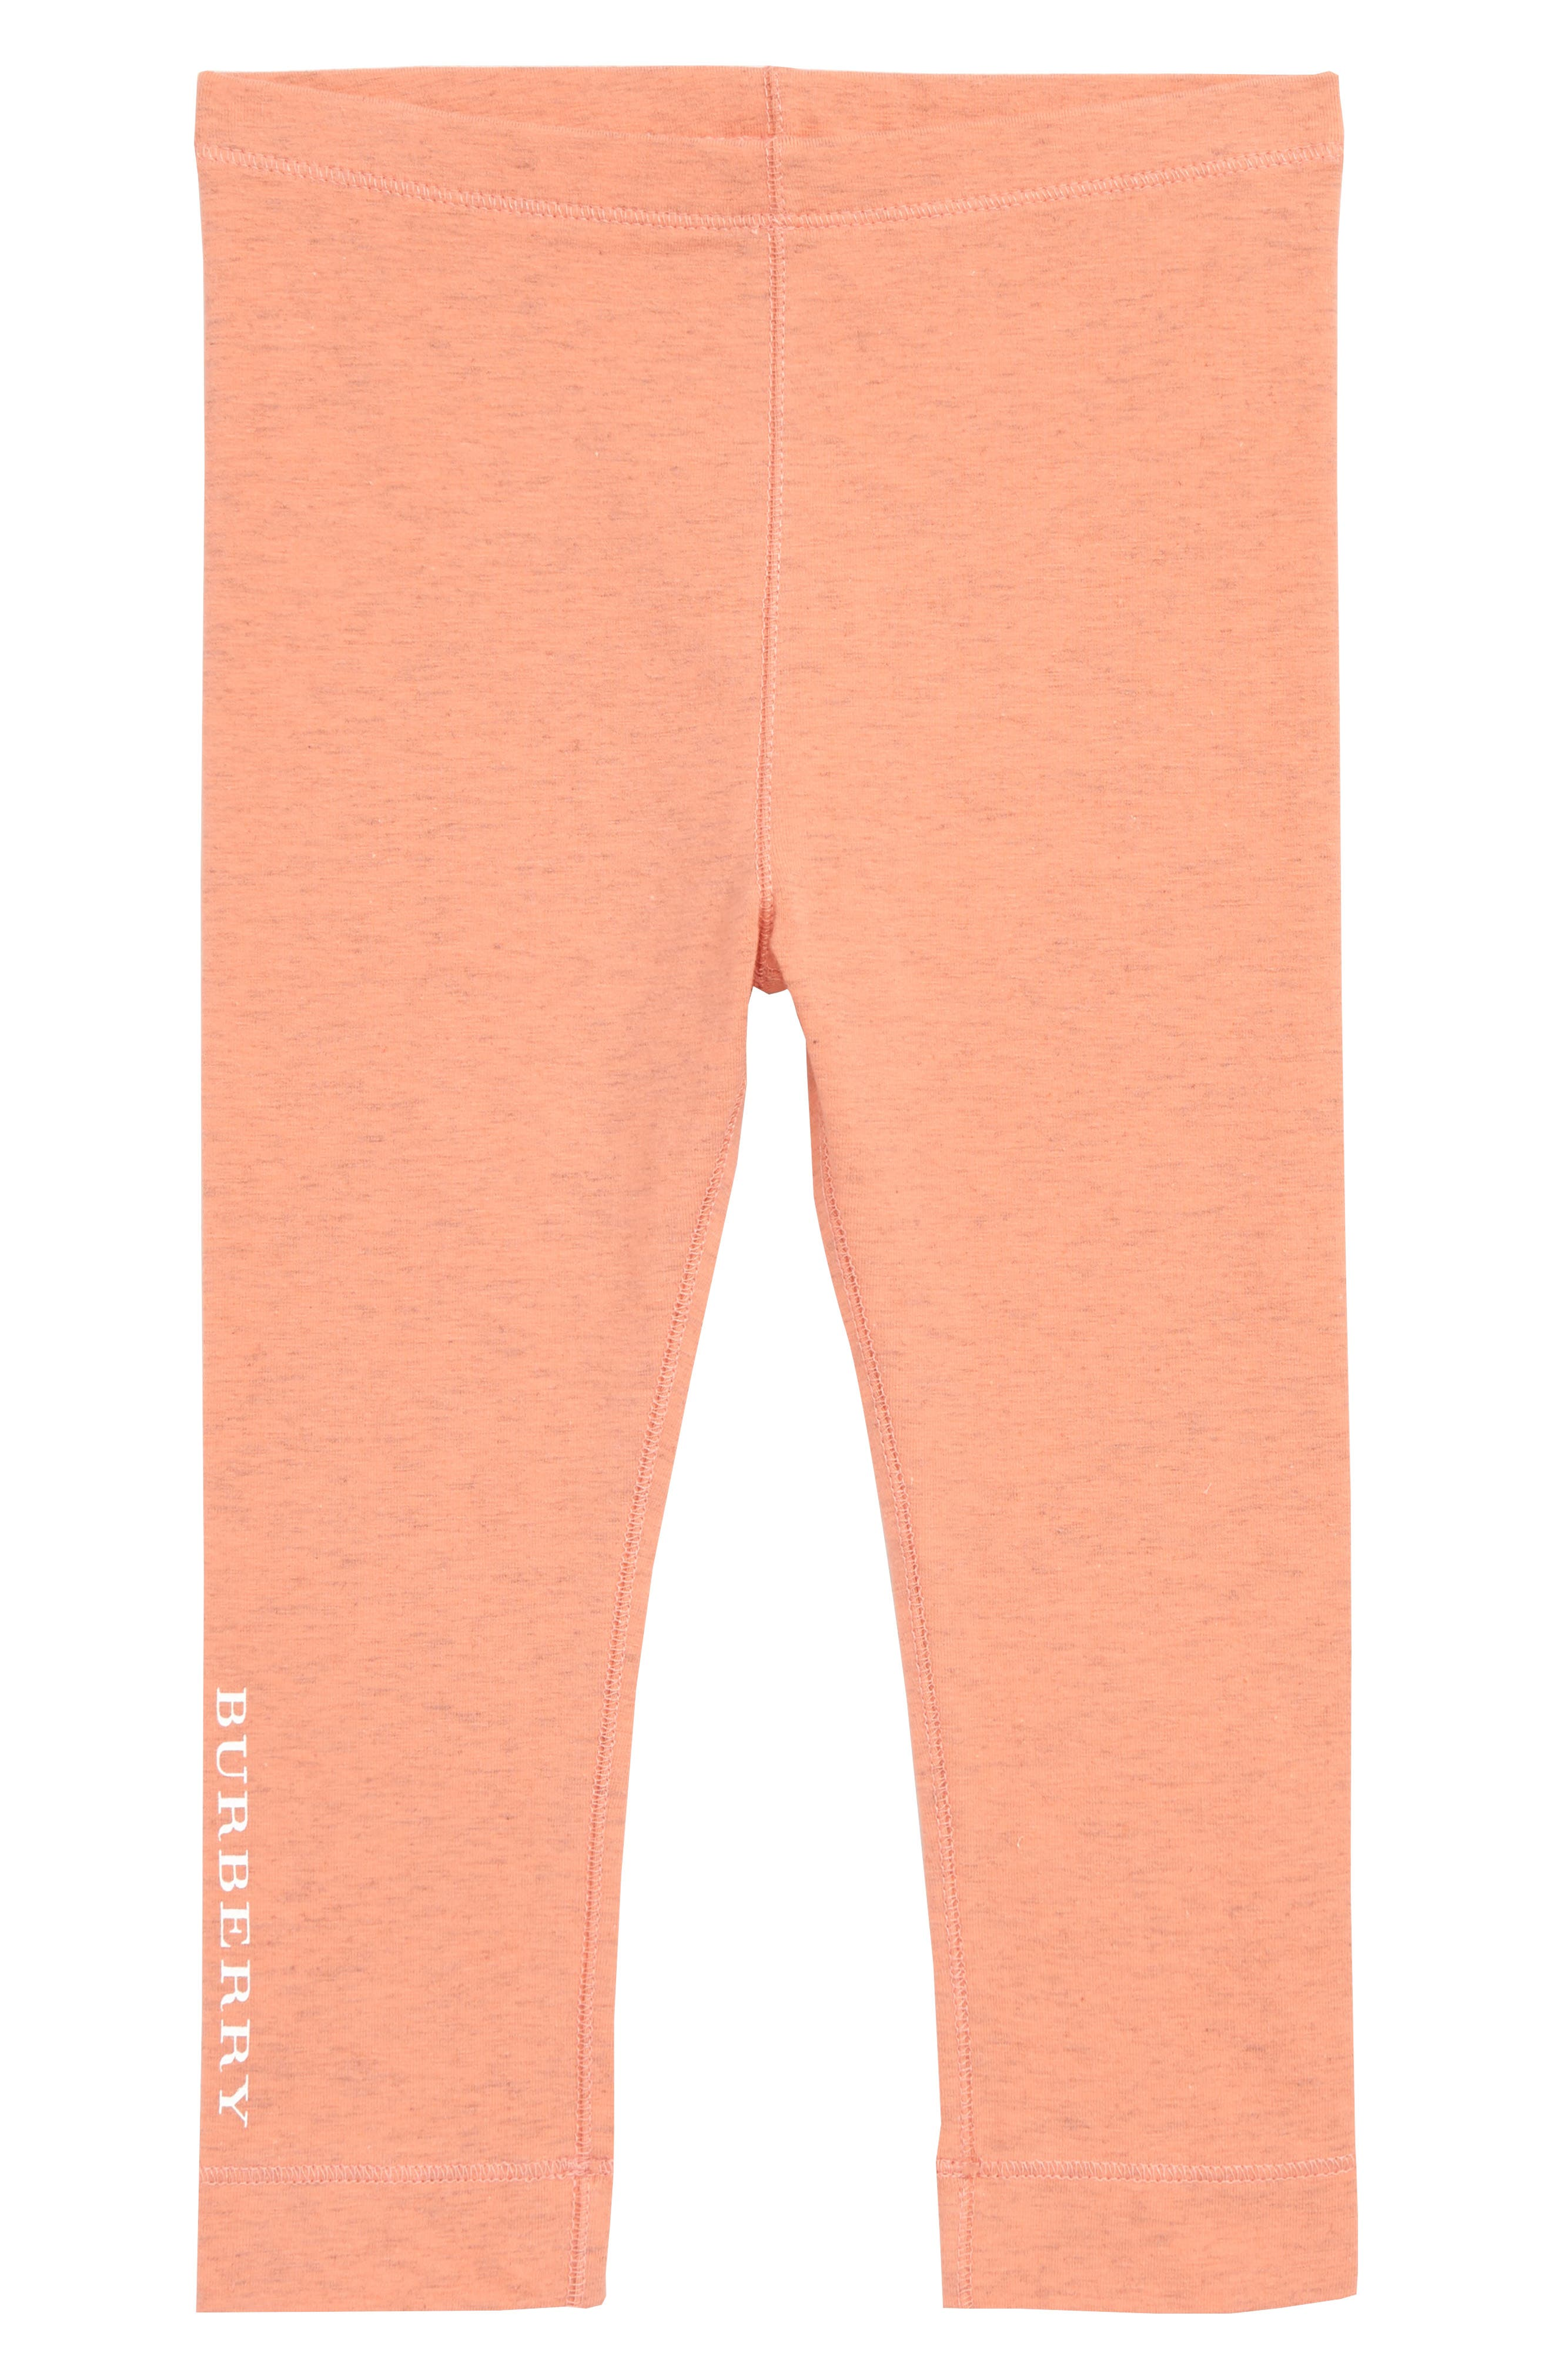 BURBERRY, Penny Logo Leggings, Main thumbnail 1, color, PALE PINK